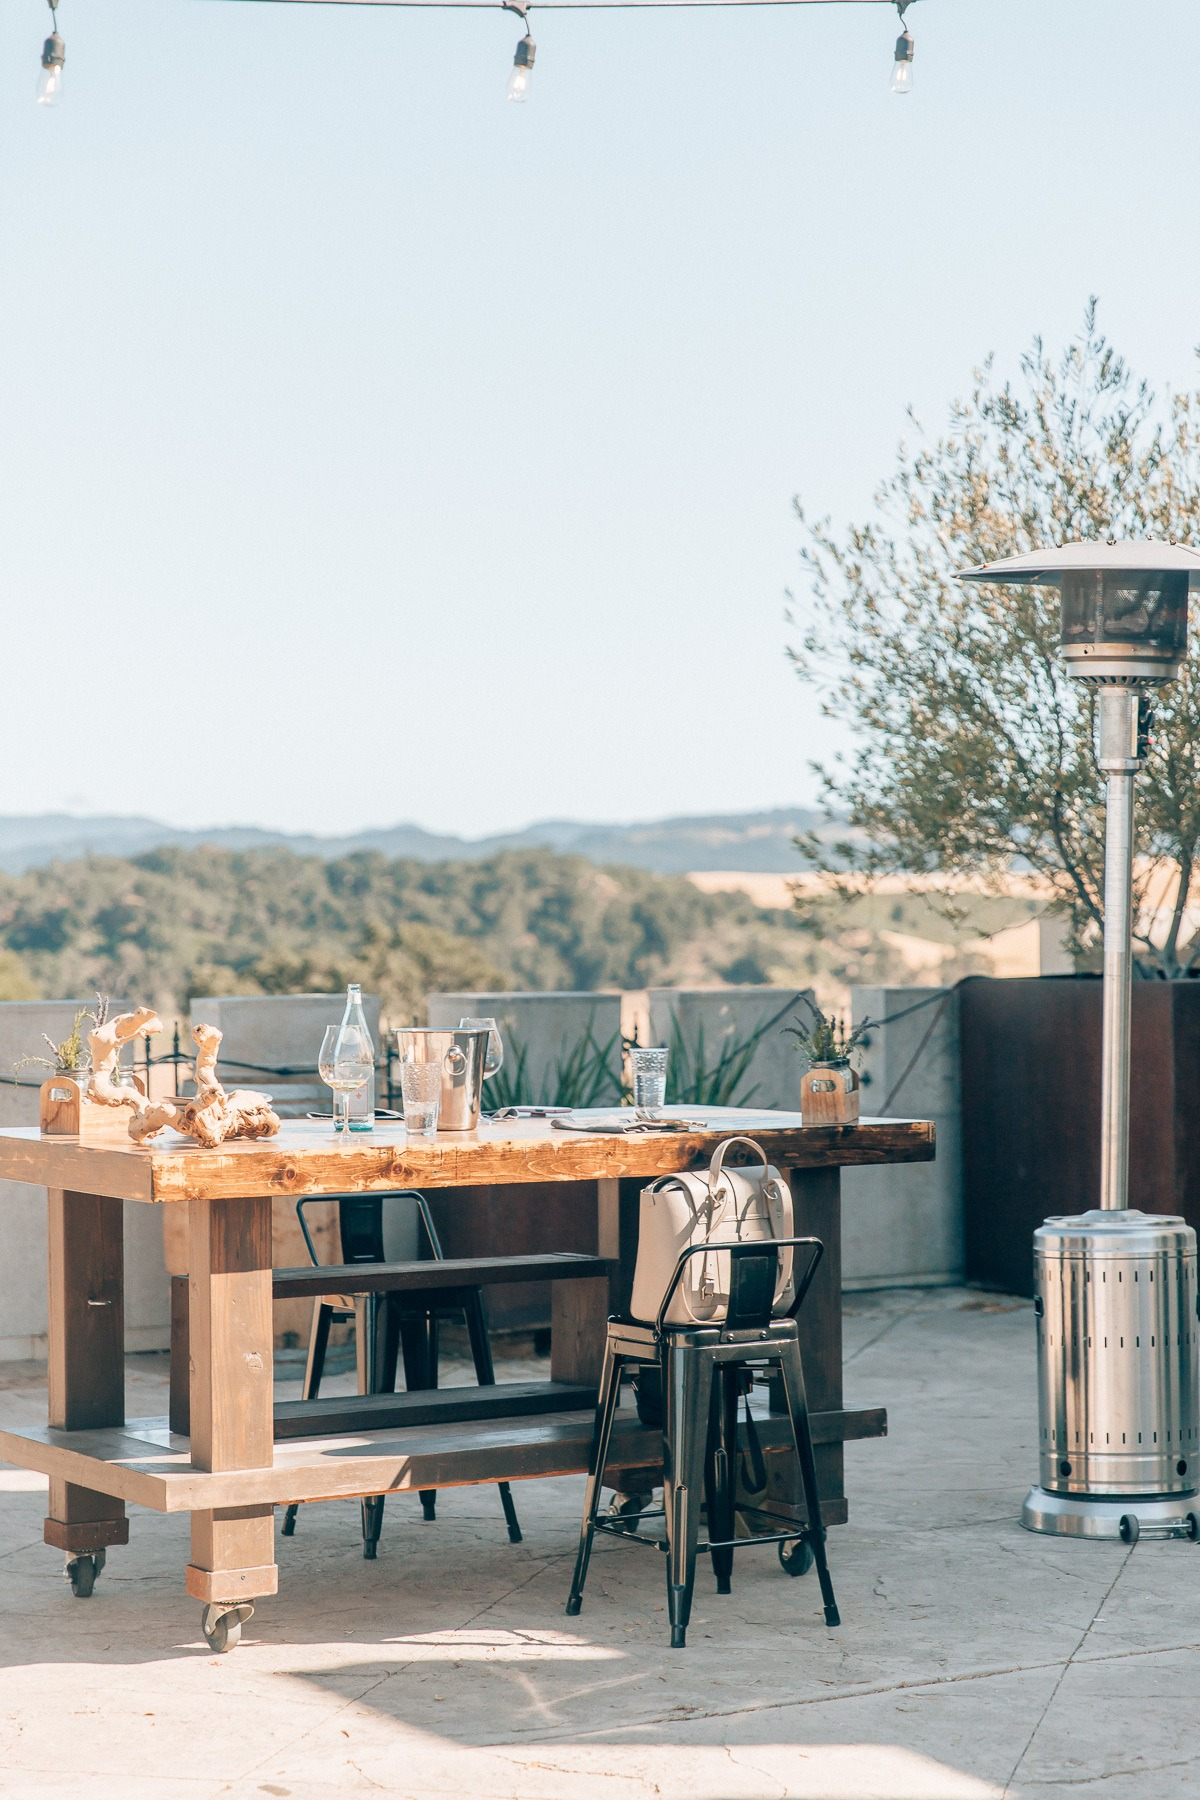 Wine tasting at Tooth and Nail Winery, by travel blogger What The Fab